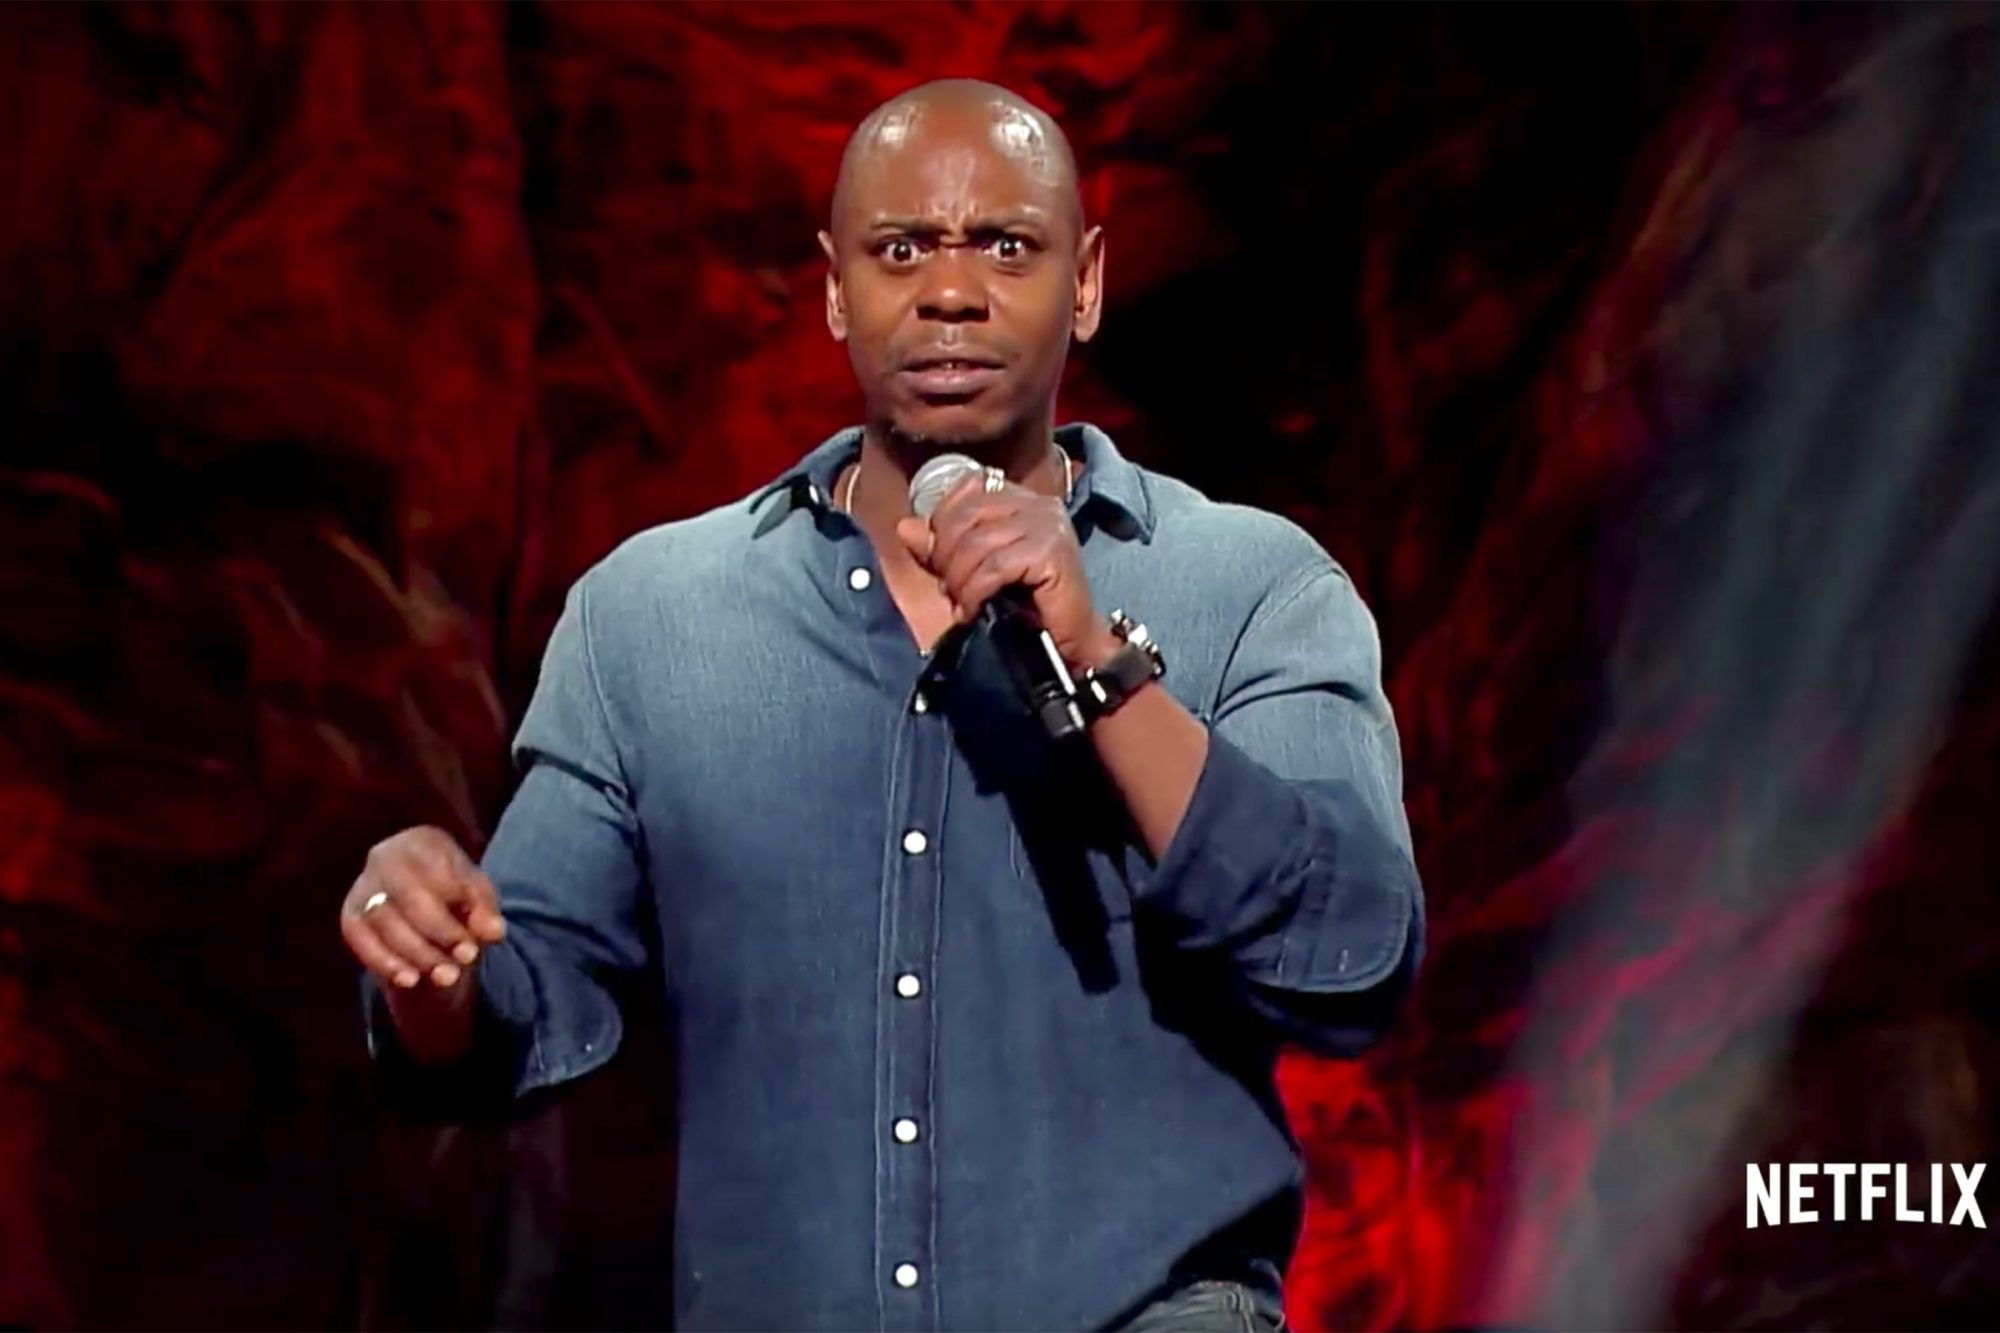 dave chappelle s back in new netflix special trailer ew com dave chappelle s back in new netflix